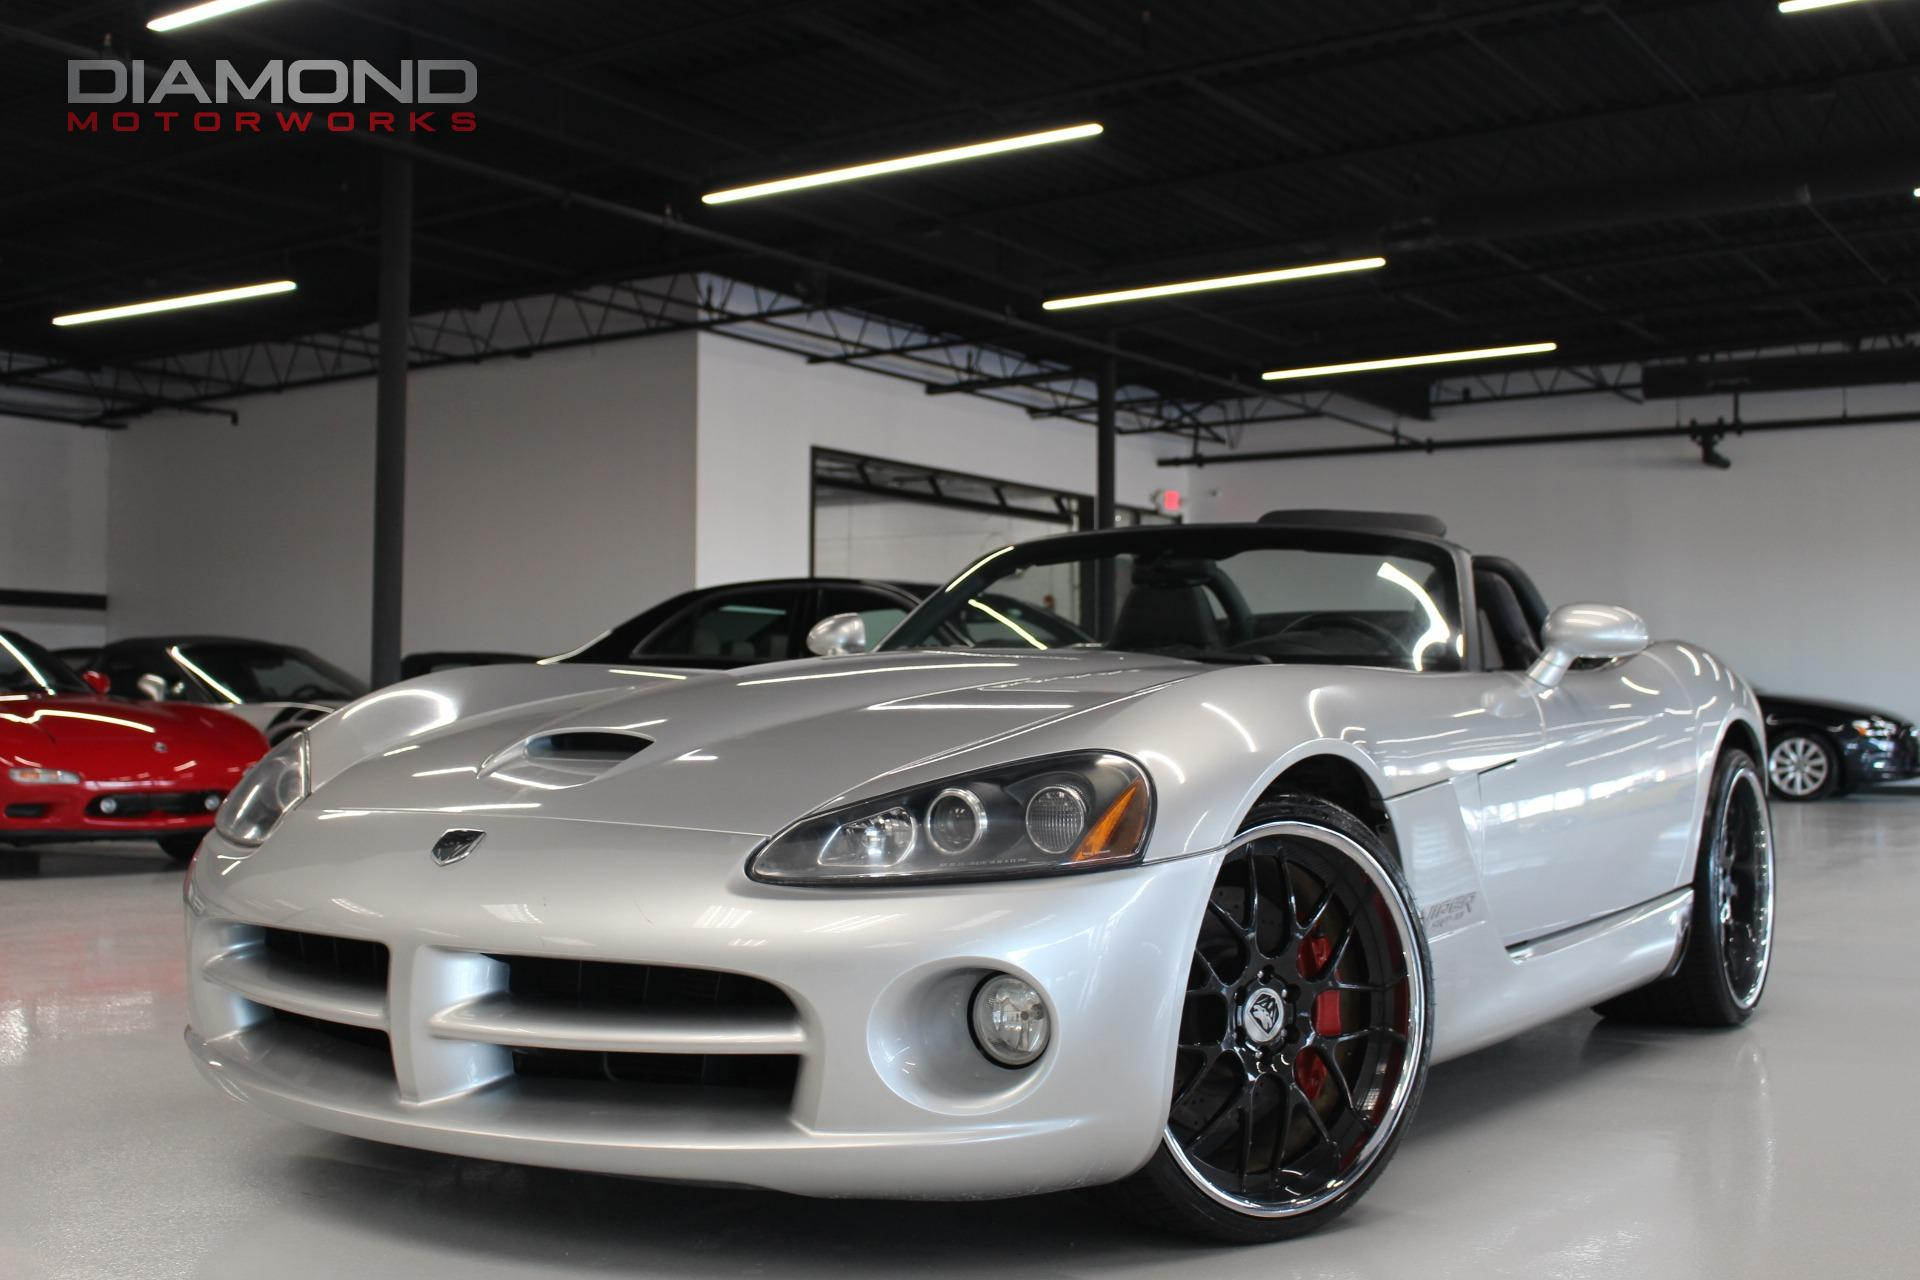 2004 dodge viper 2dr convertible srt10 stock 100914 for sale near lisle il il dodge dealer. Black Bedroom Furniture Sets. Home Design Ideas